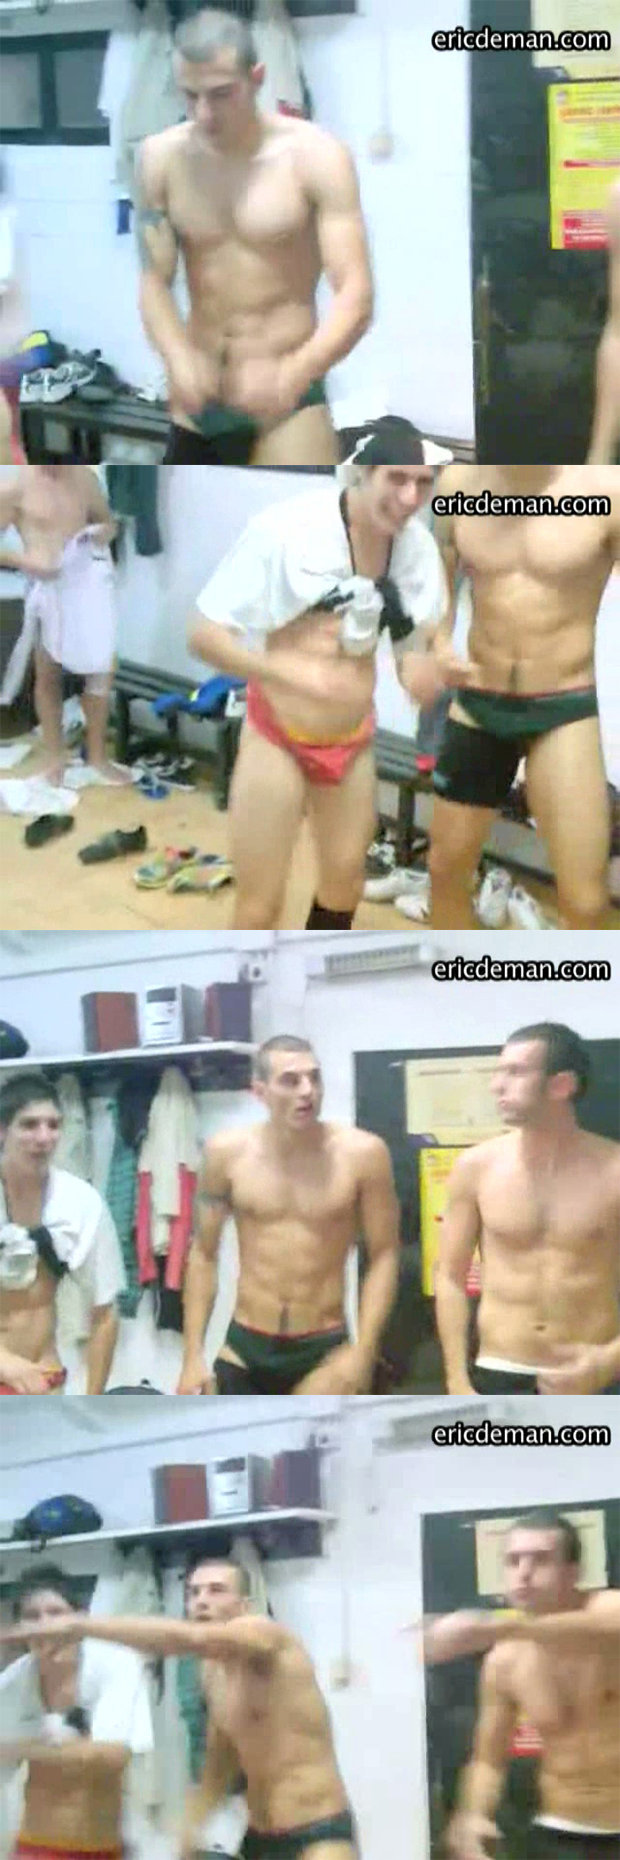 guys fooling around in lockerroom